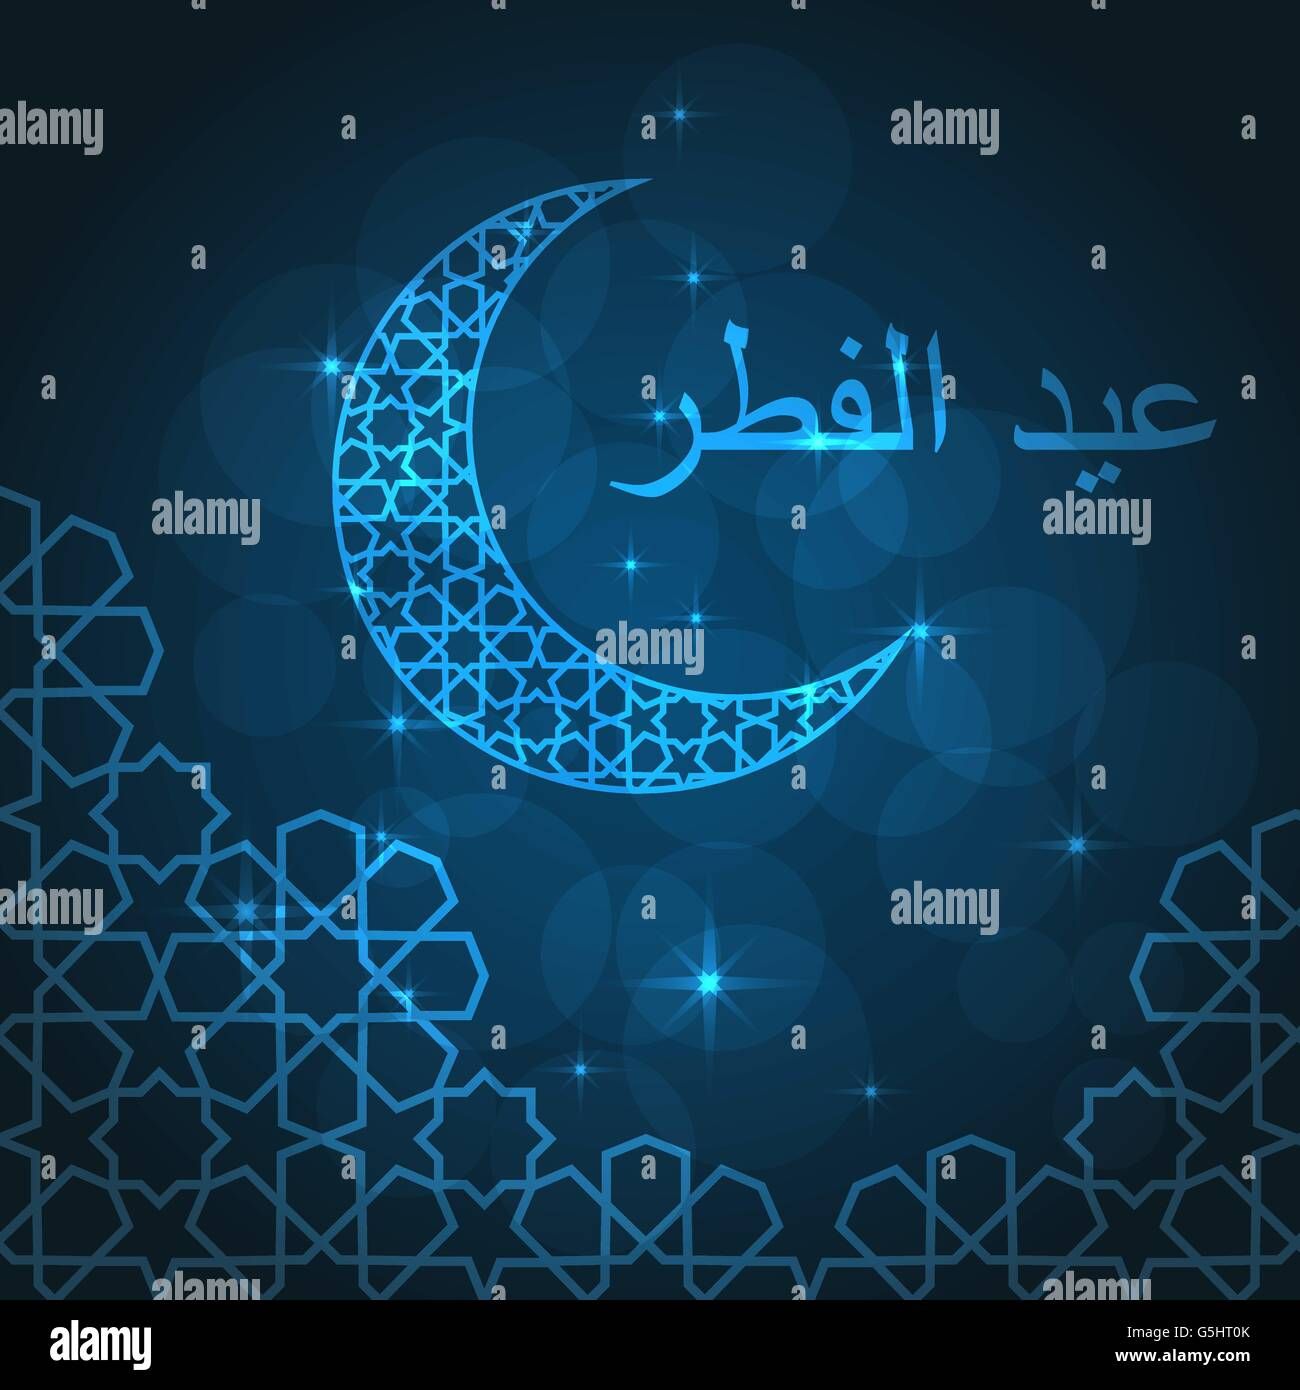 Eid al fitr greeting stock vector art illustration vector image eid al fitr greeting kristyandbryce Images